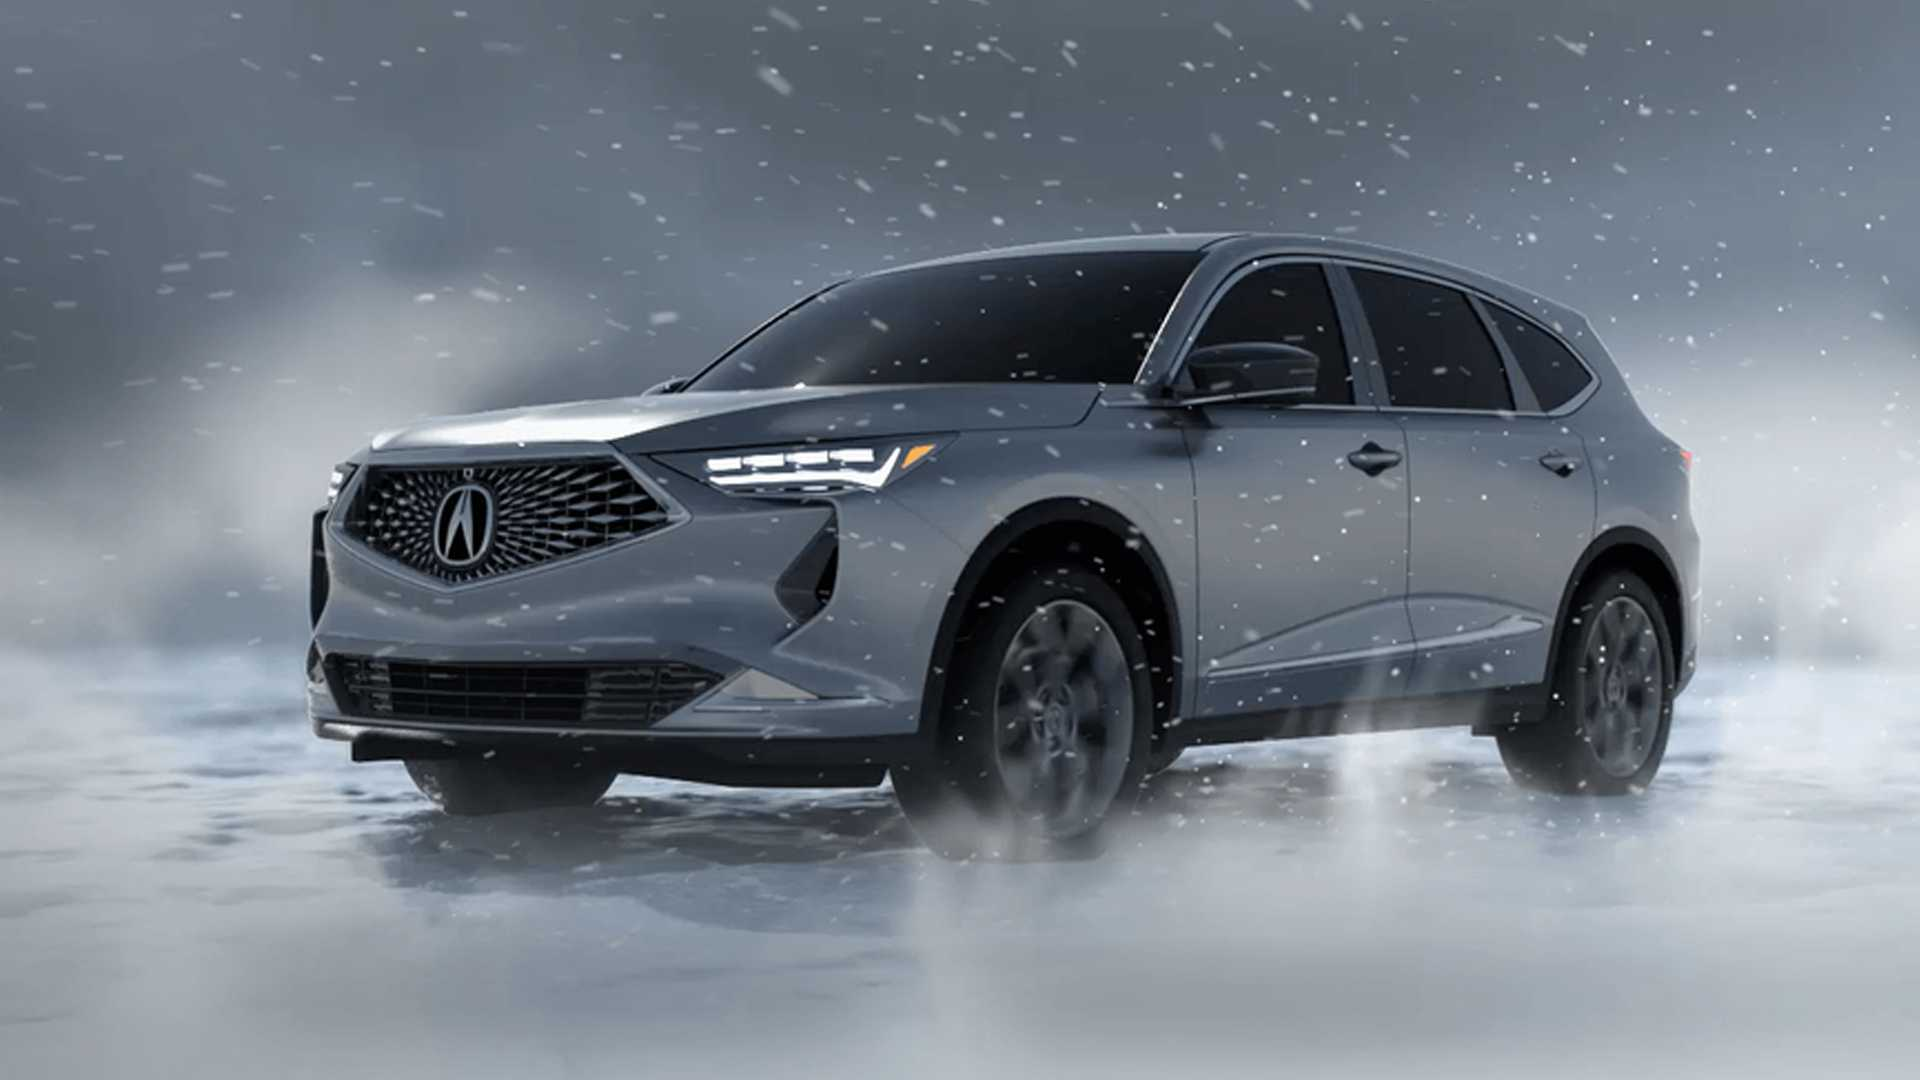 New Acura MDX, TLX Allegedly Leaked Through RDX Software Suite